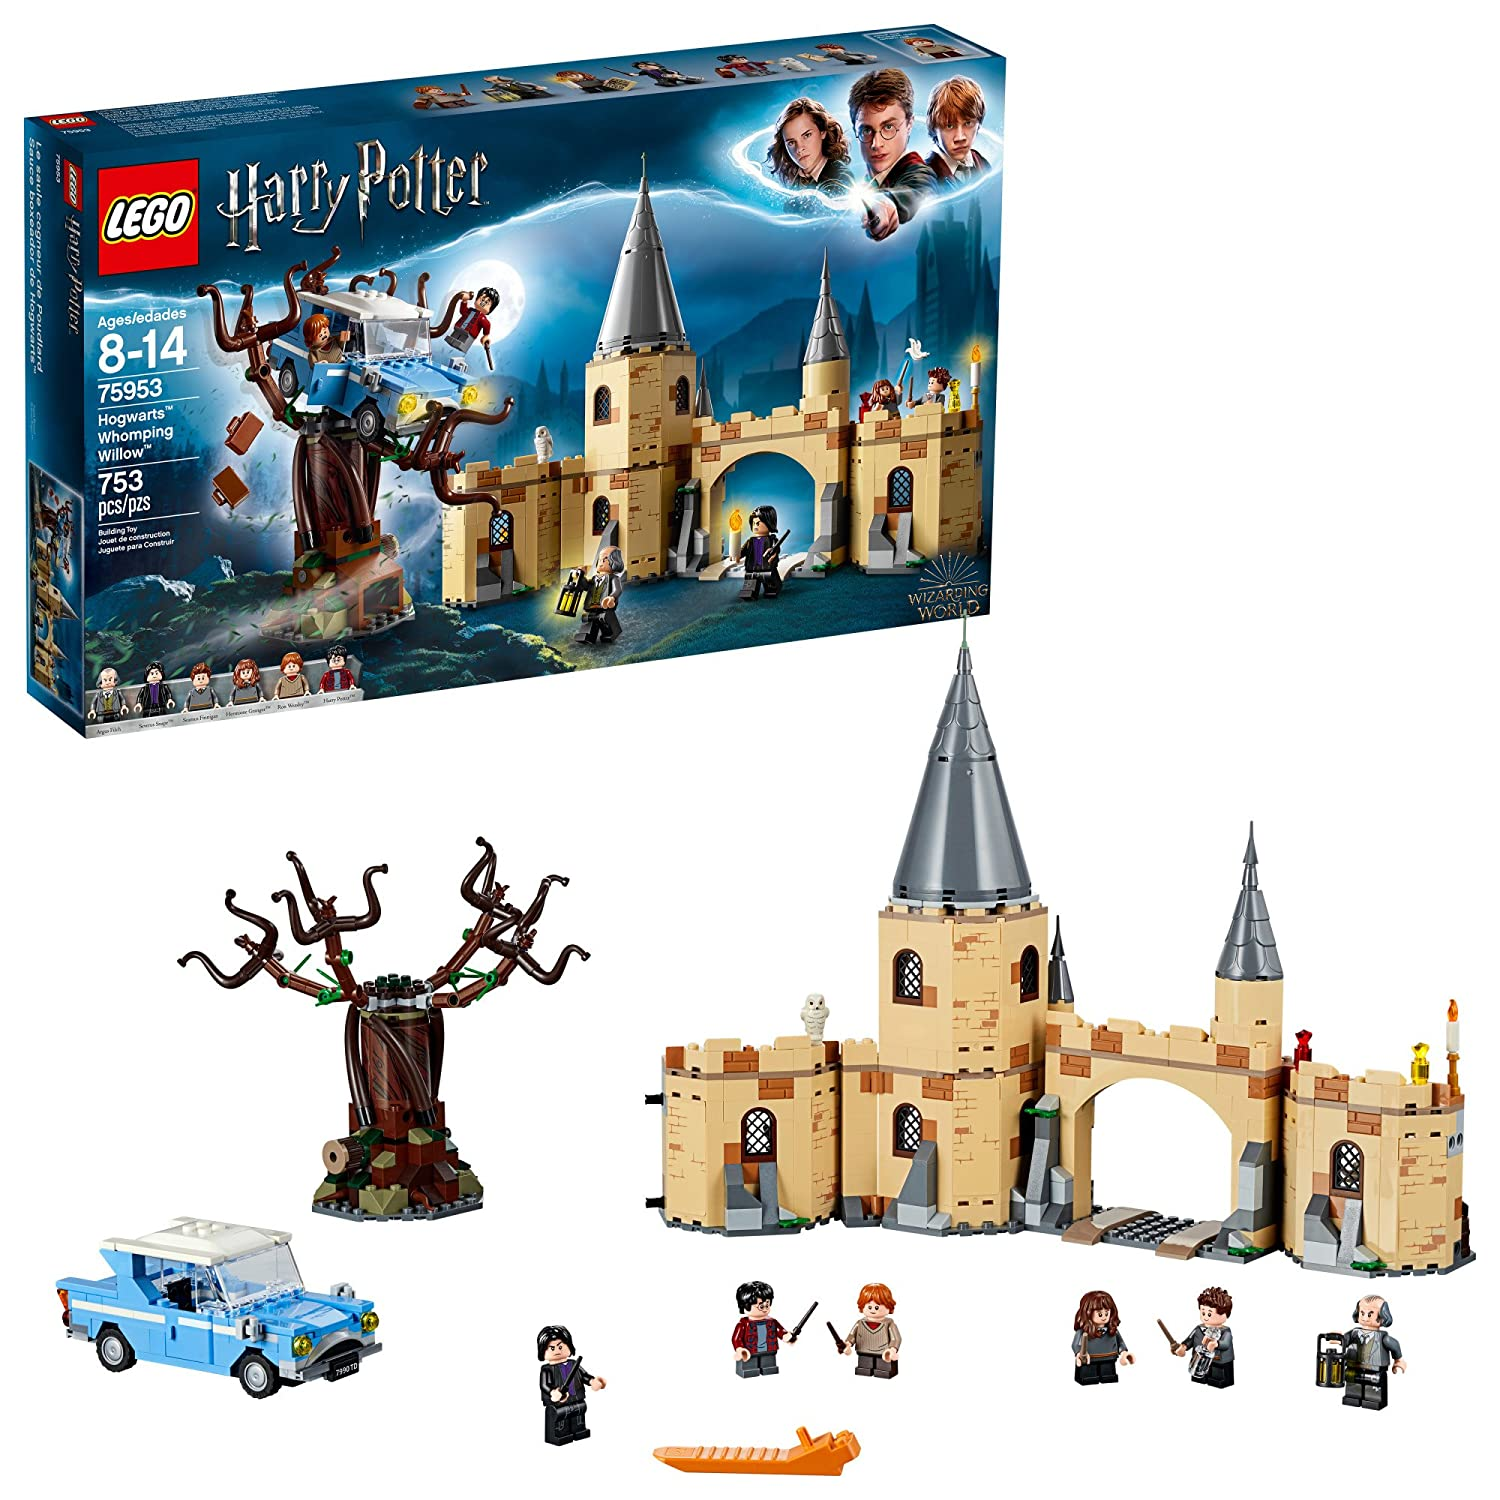 LEGO Harry Potter Hogwarts Whomping Willow Building Kit (753 Piece), Multicolor 6212642